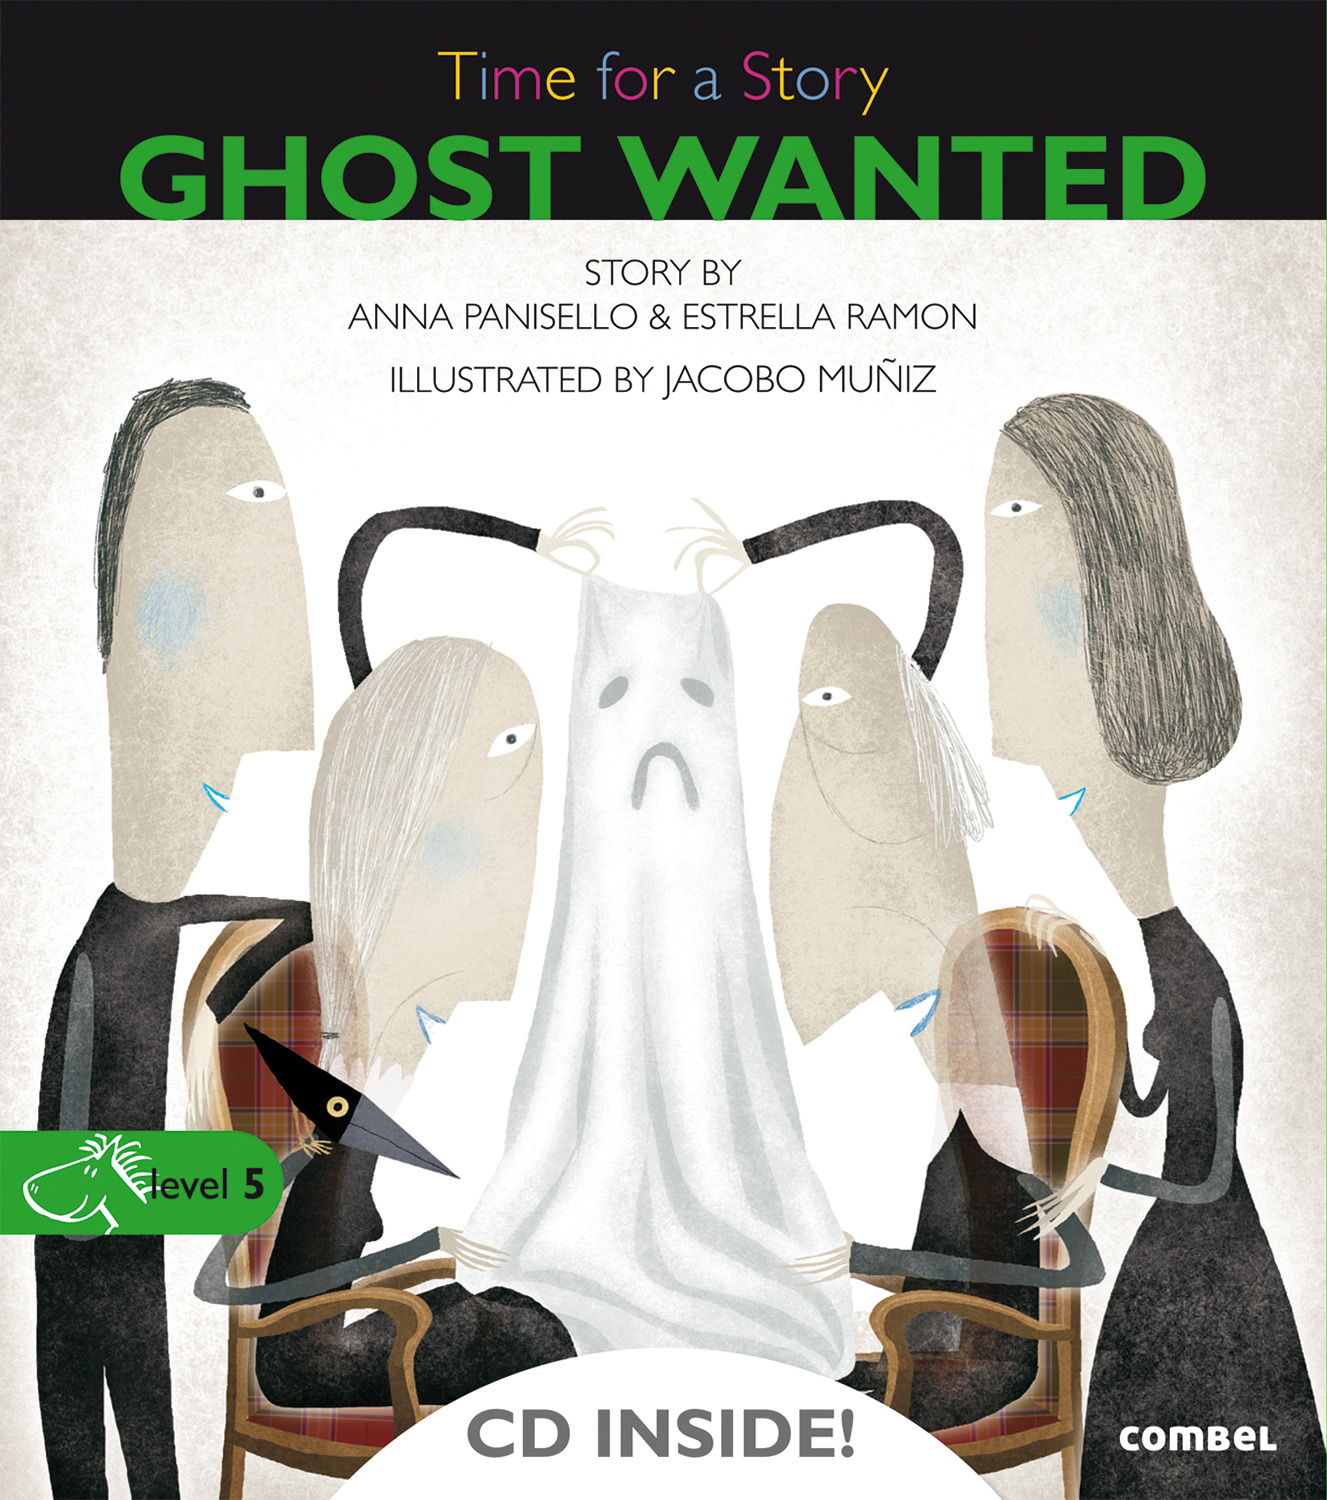 58042-GHOST-WANTED-5INCH